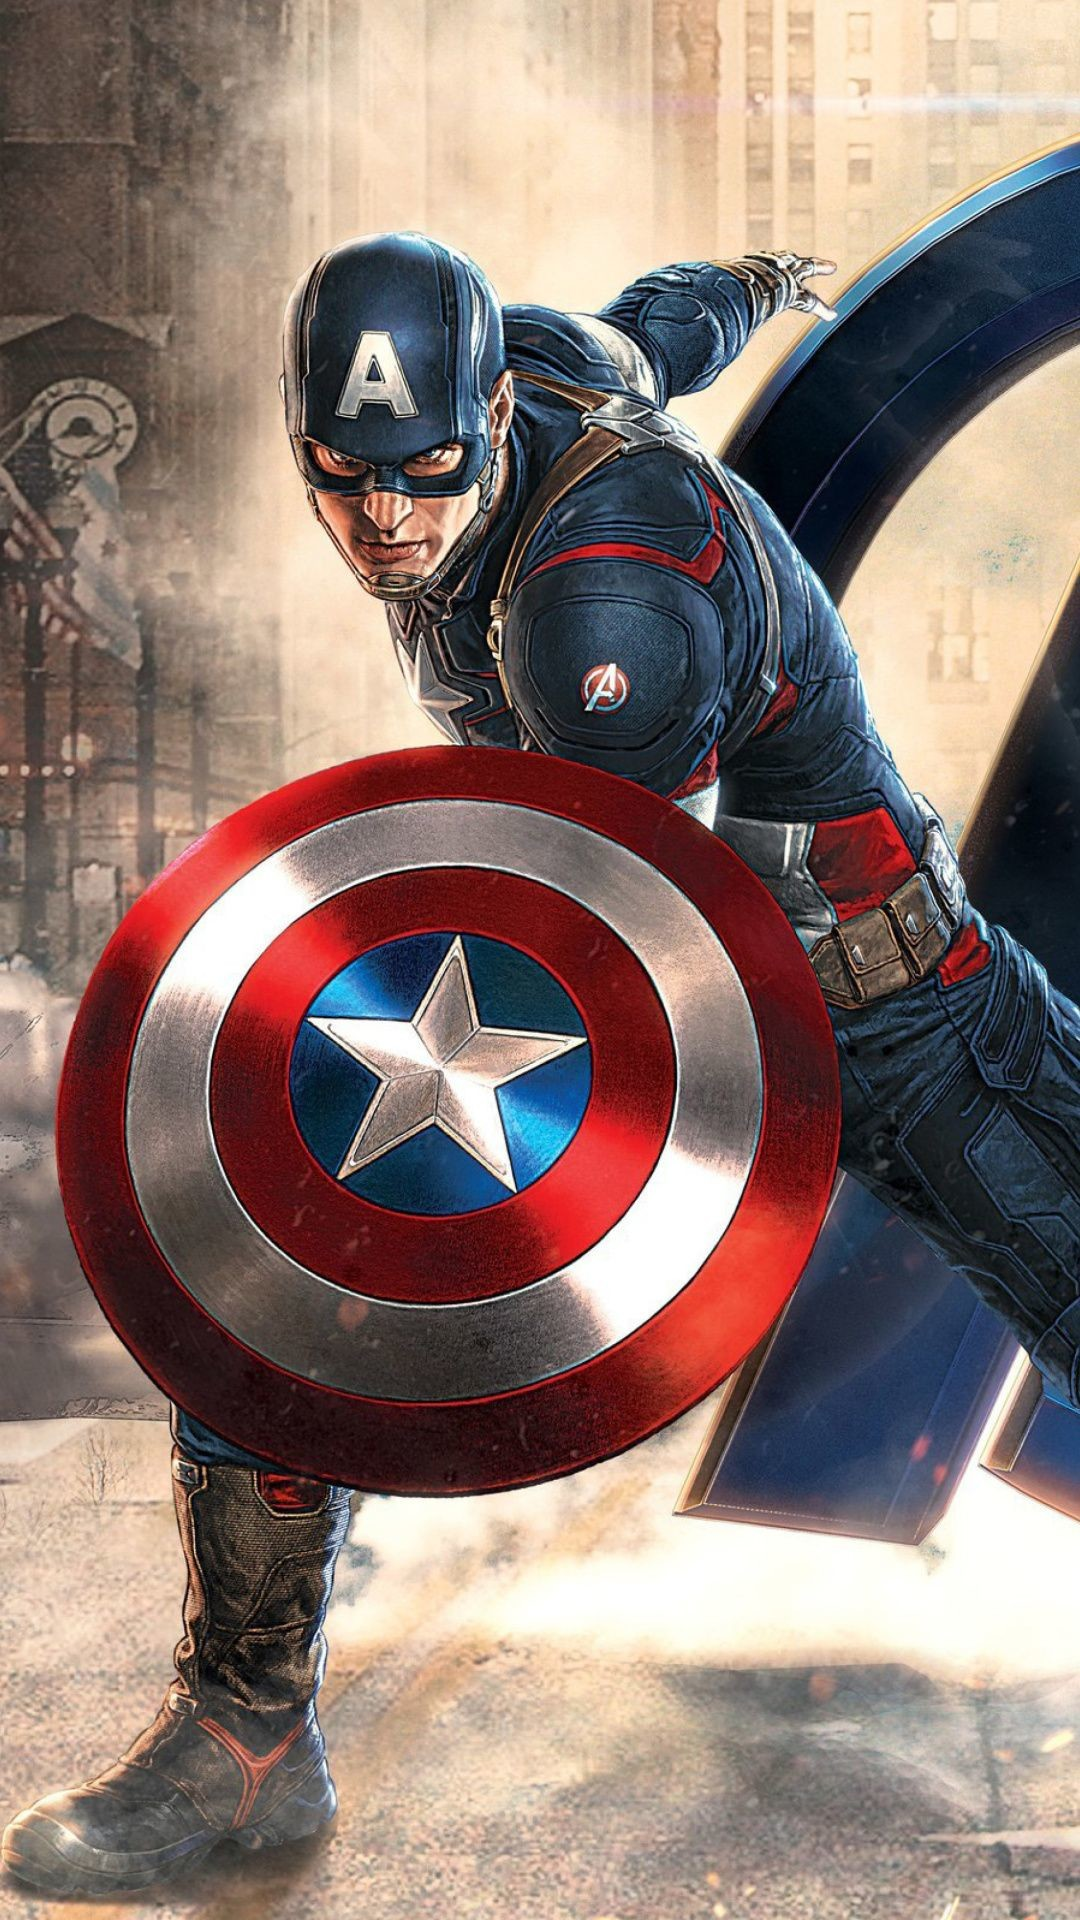 78 Captain America Wallpapers on WallpaperPlay 1080x1920